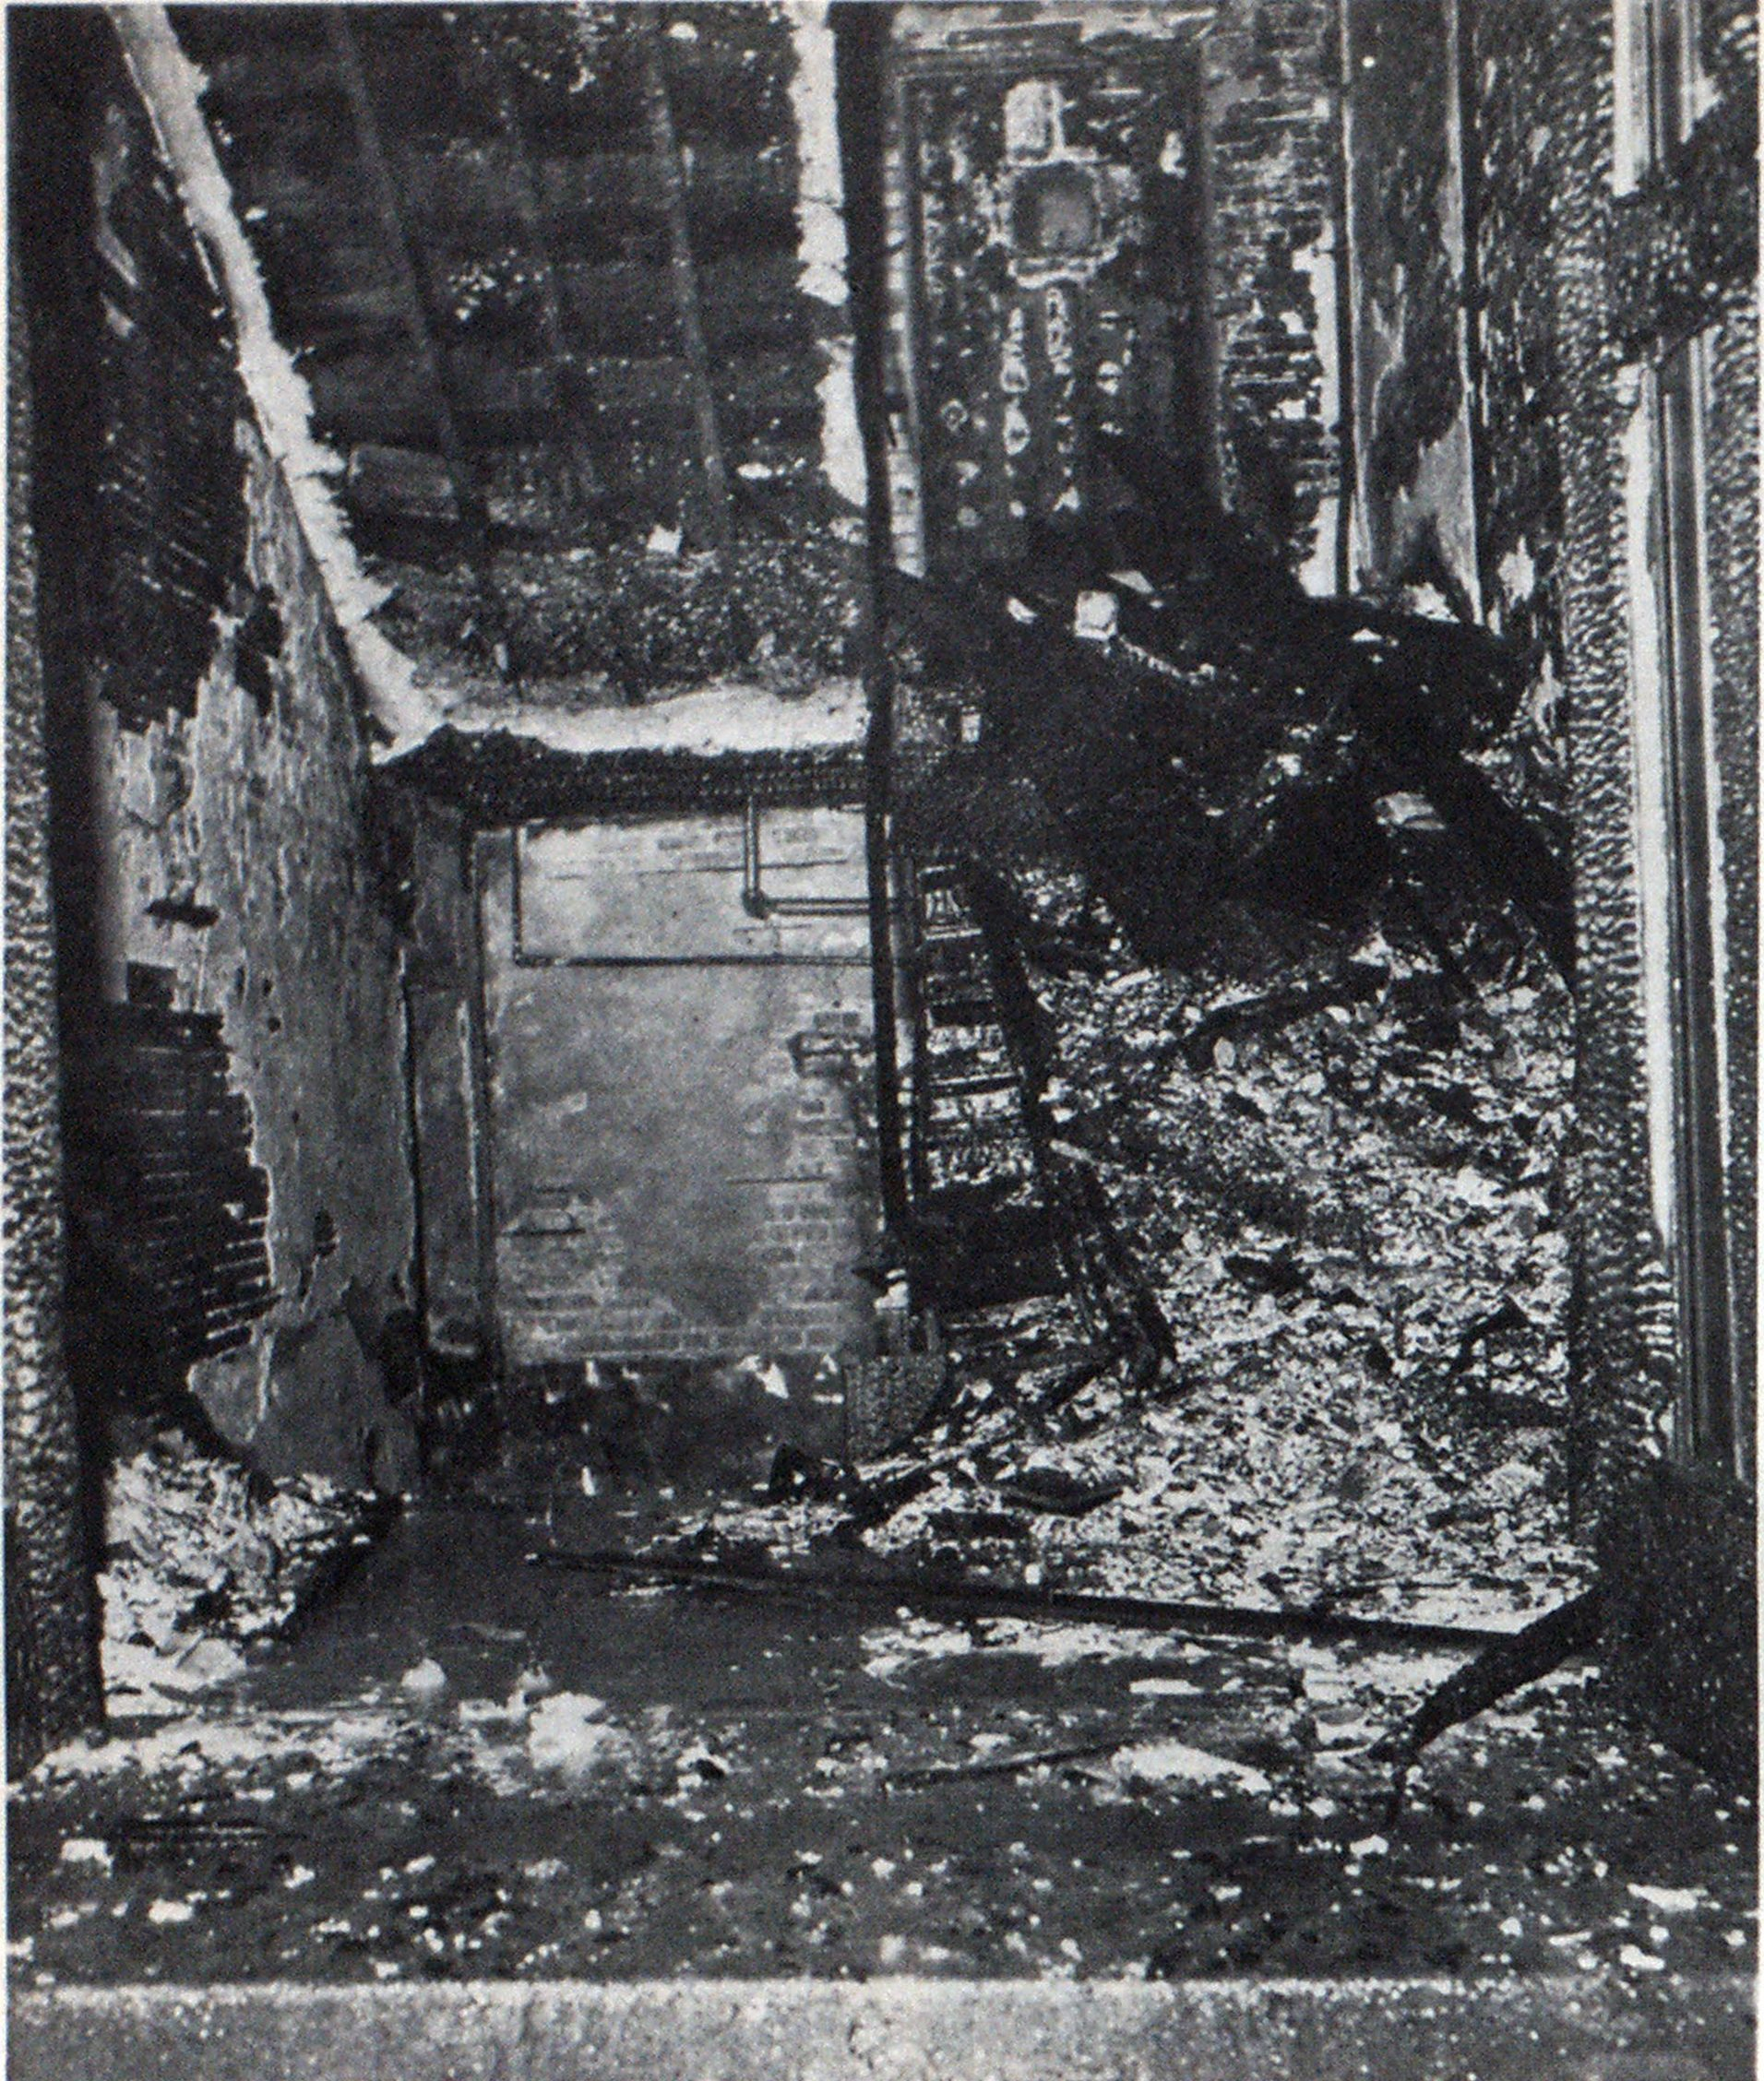 Wooden stairways were factor in rapid spread of fire. Fire, which started in basement, swept up stairs to first-floor door, at left, and continued up stairs at right to second floor, cutting off escape route for children